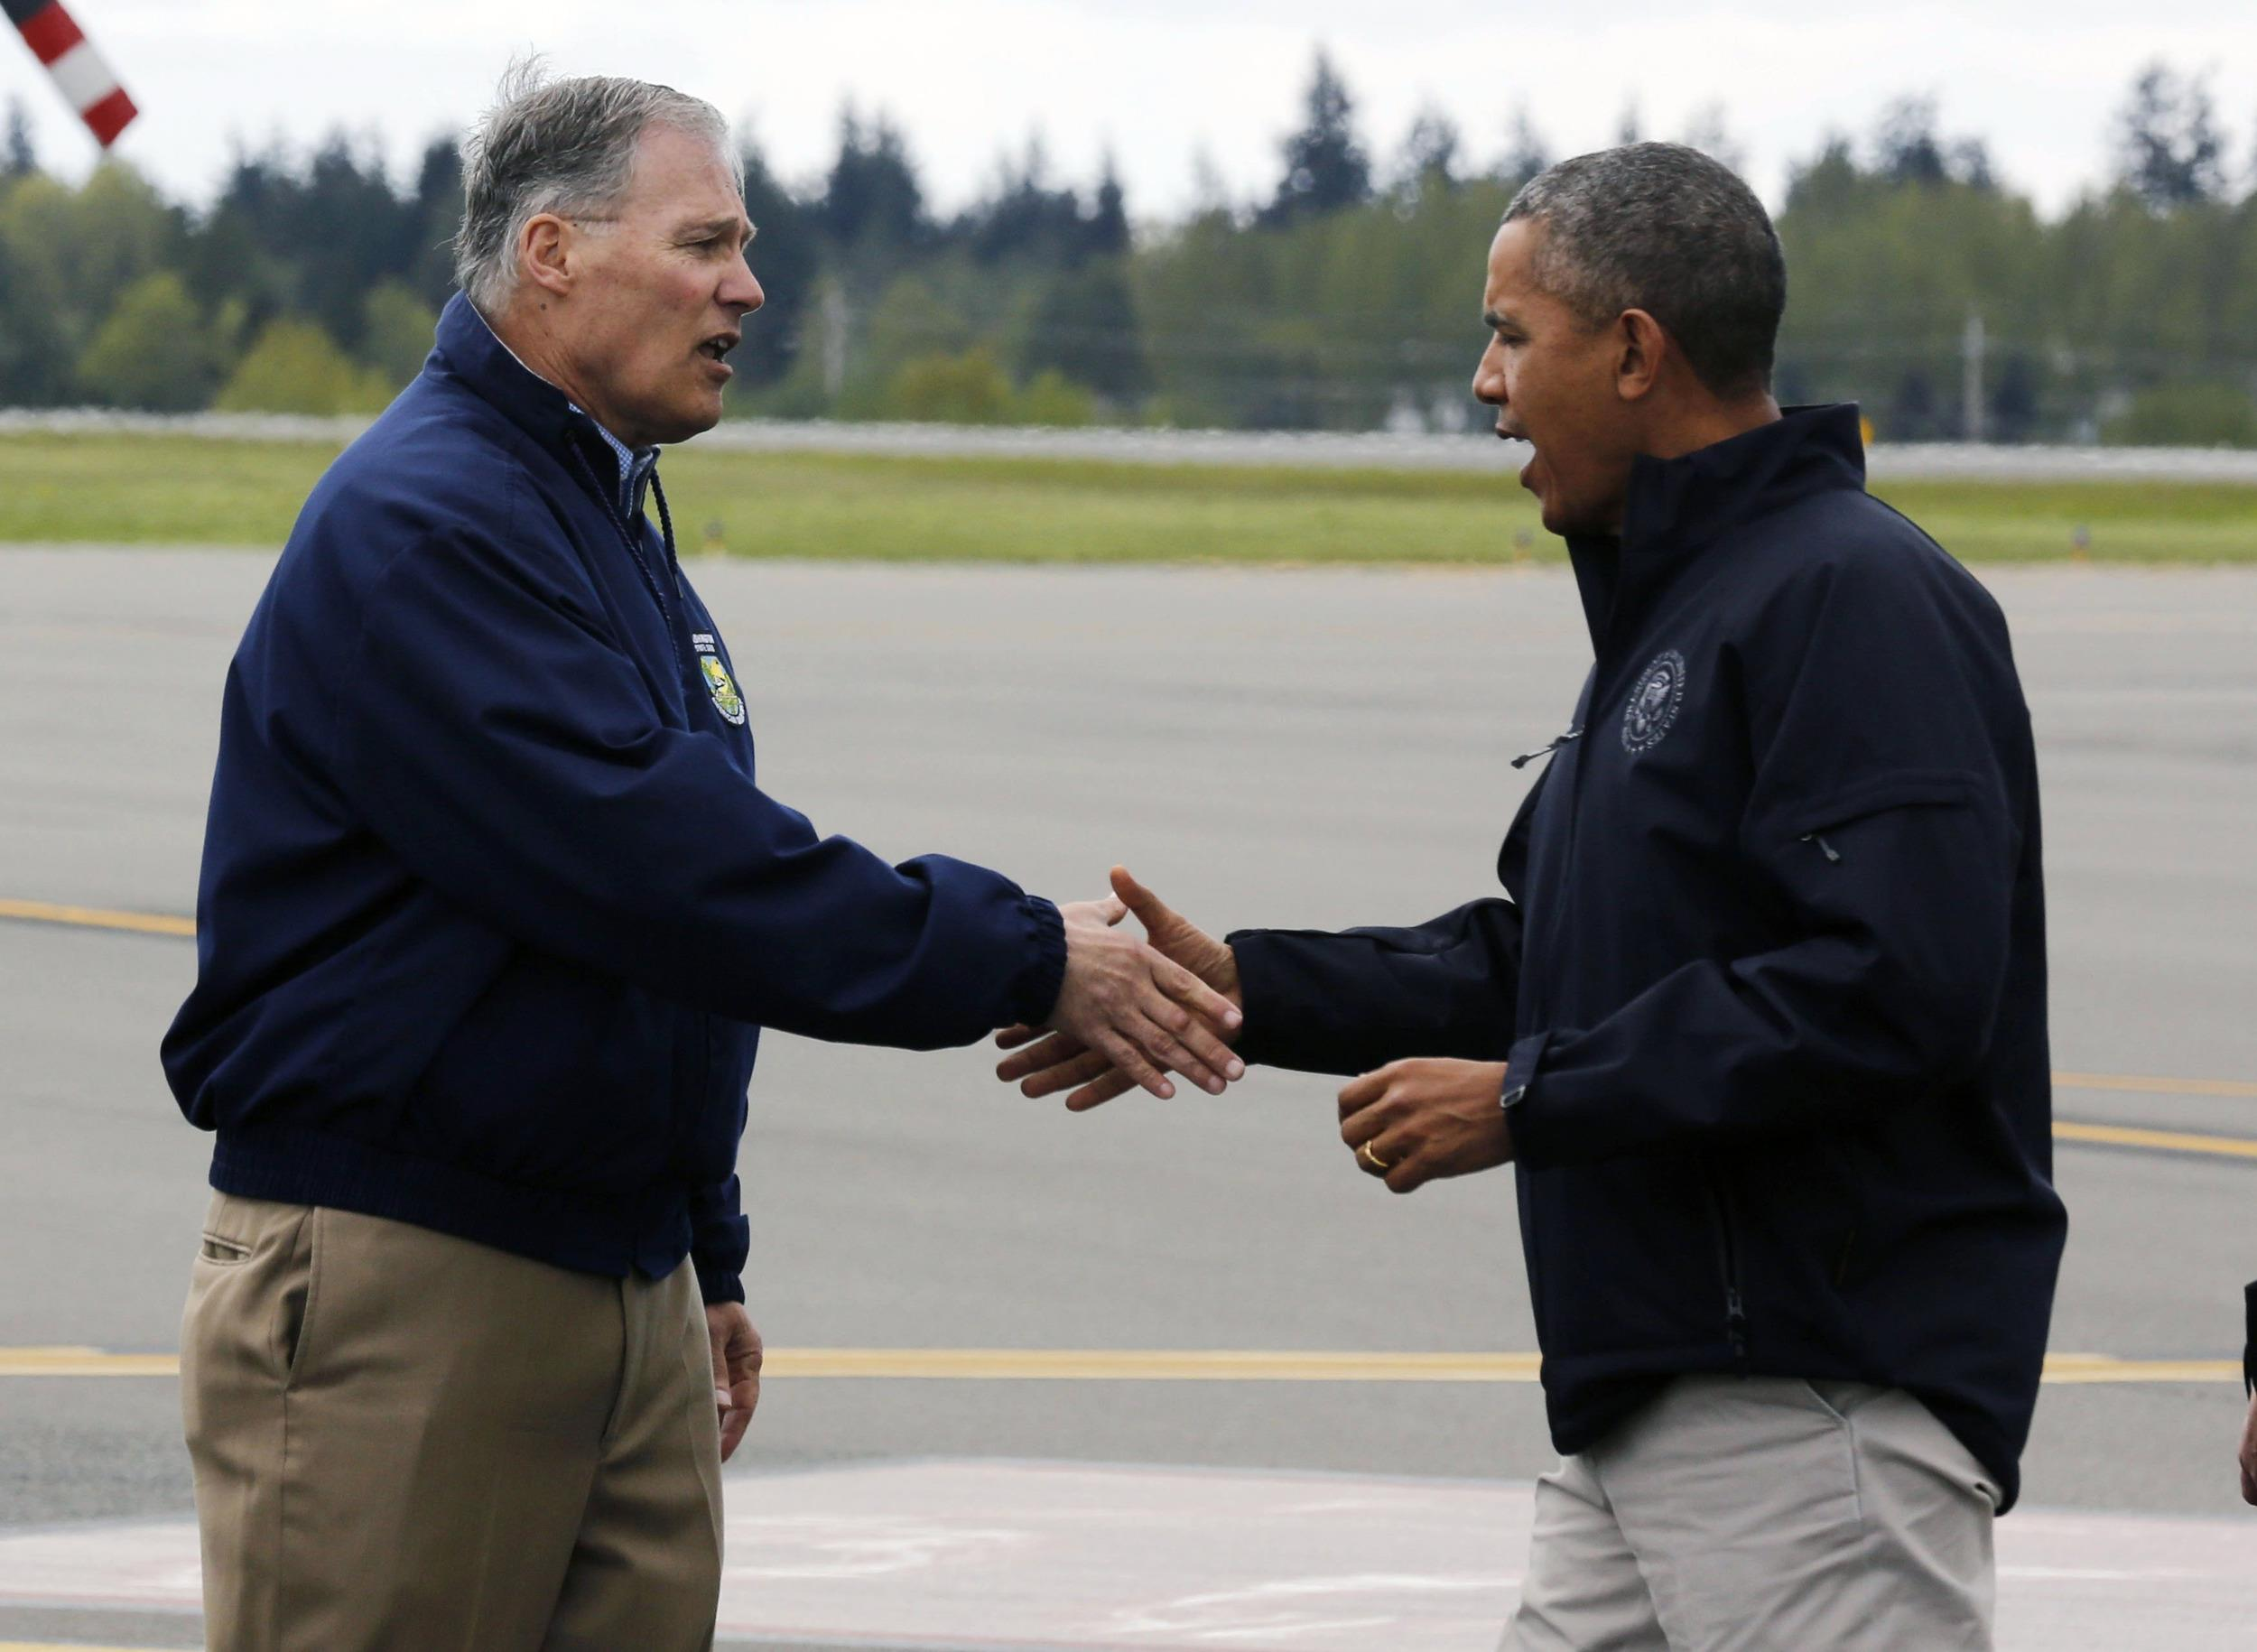 Image: U.S. President Obama shakes hands with Washington Gov. Inslee after he arrives at Paine Field Airport in Washington